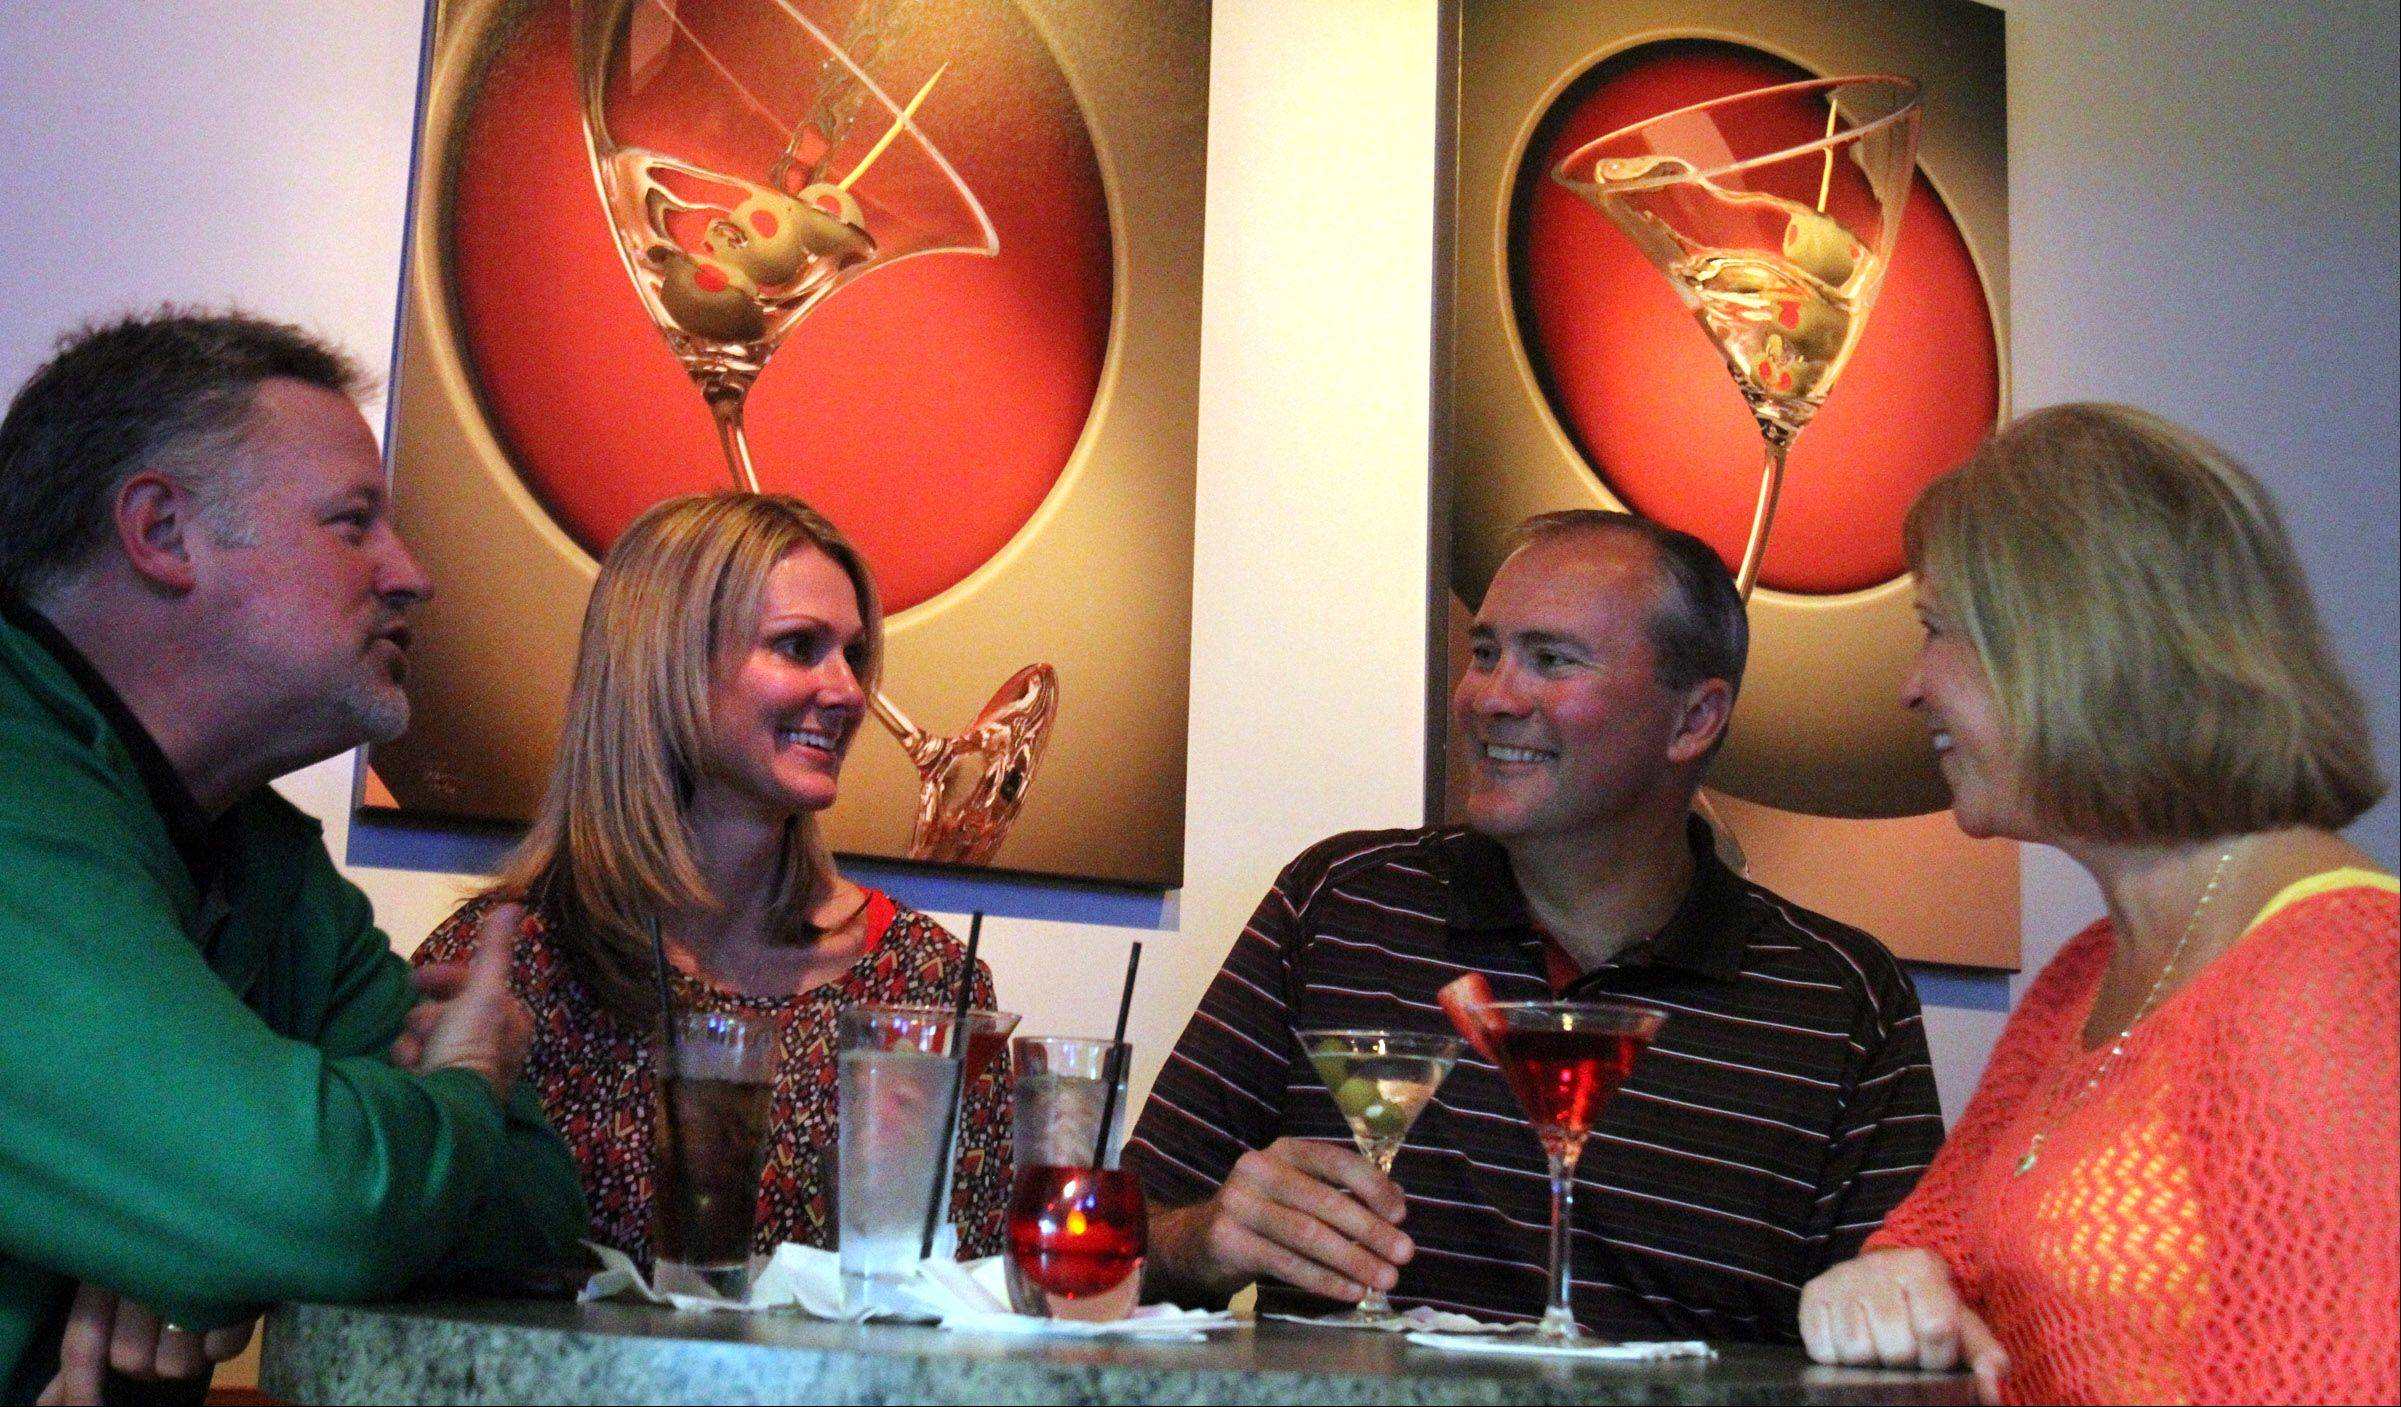 Chris and Gina Paluch, left, and Ken and Beth Edward, all of Hawthorn Woods, enjoy drinks at Strawberry Moon martini bar in Wauconda.